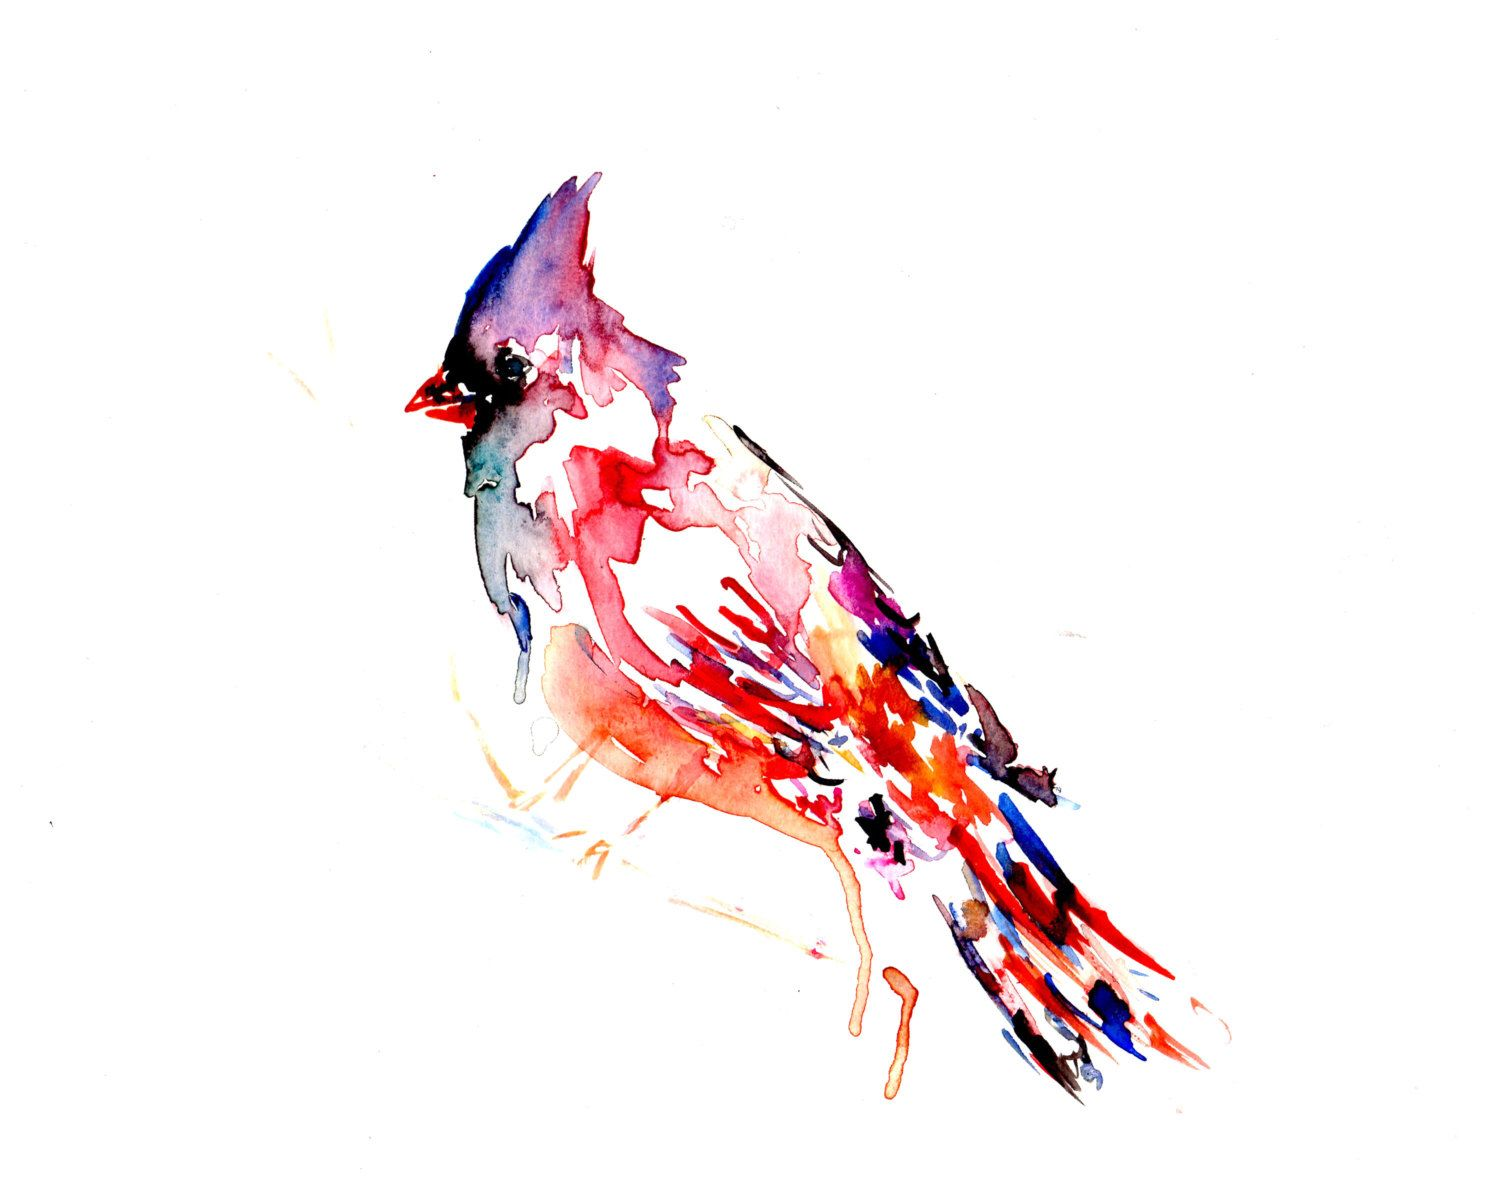 Cardinal Watercolor Painting Watercolor Print Of Bird Cardinal Painting Cardinal Print Abstract Bi Red Bird Tattoos Cardinal Watercolor Bird Tattoo Sleeves